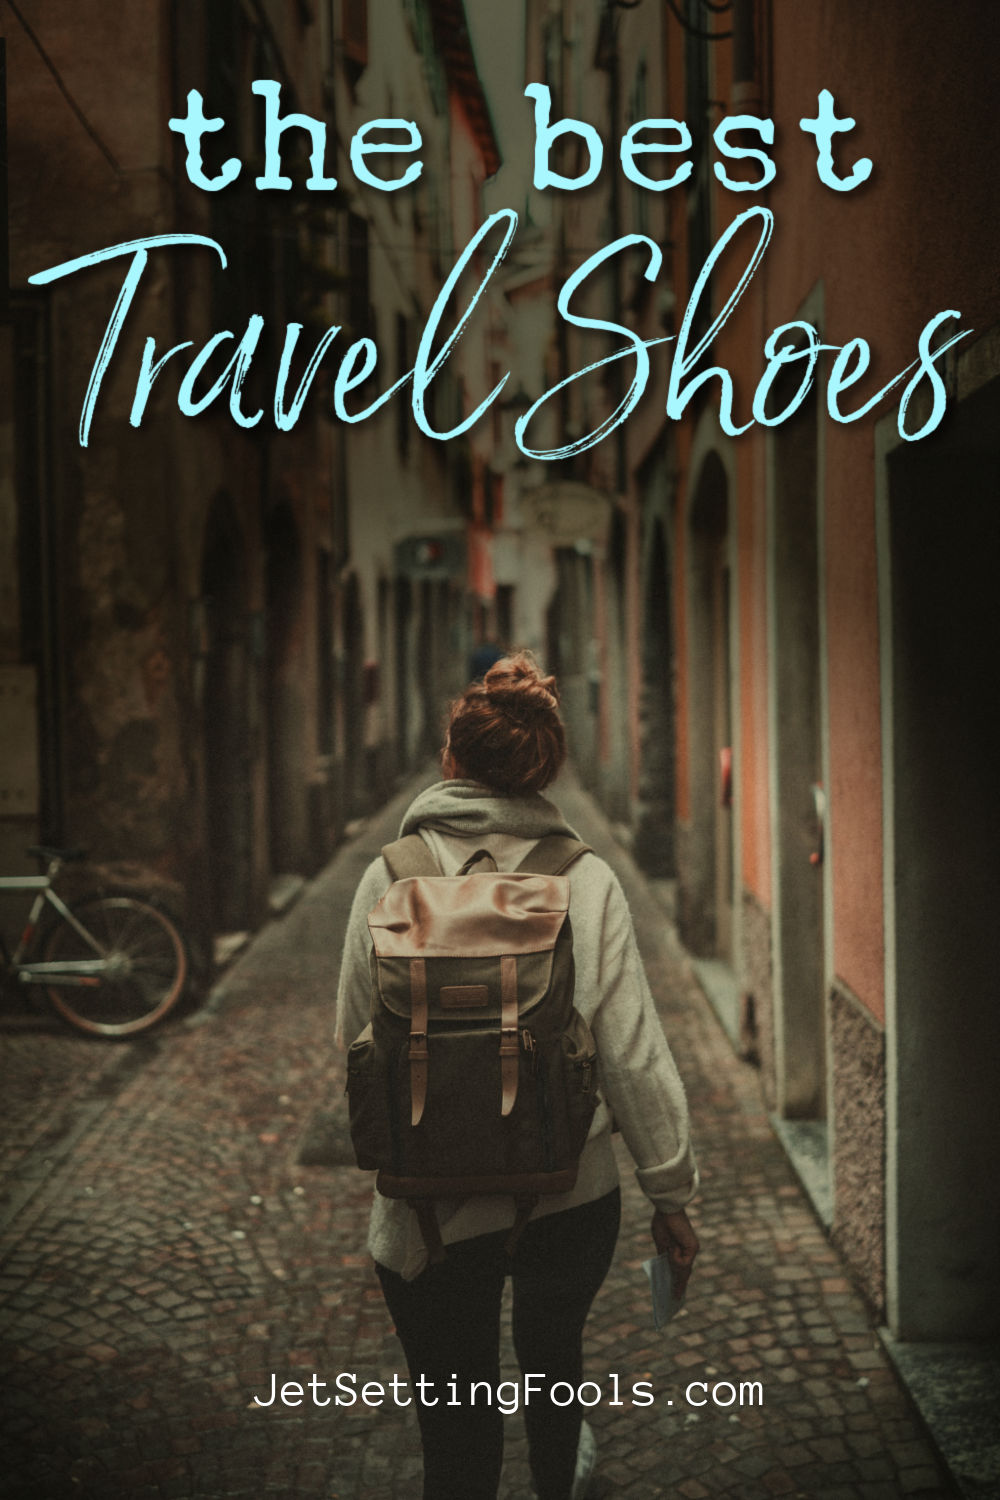 Best Travel Shoes by JetSettingFools.com